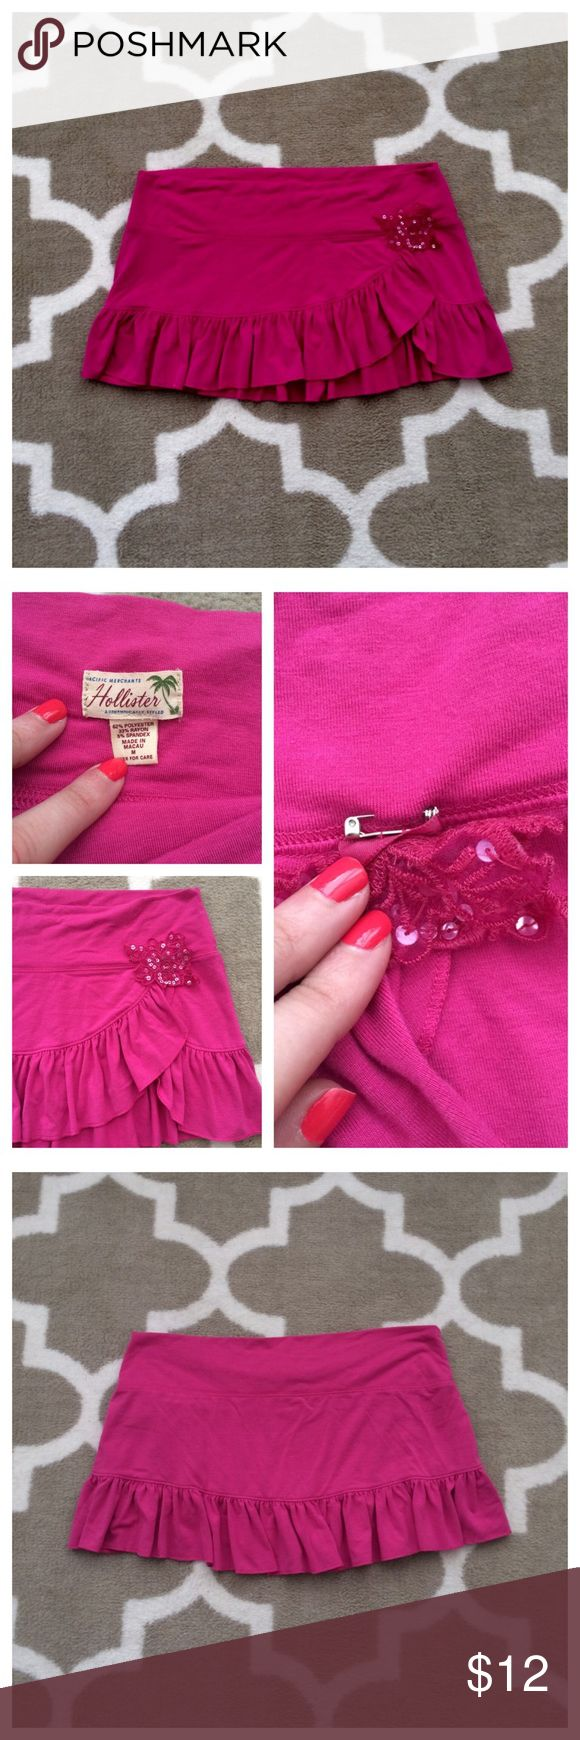 Hollister Skirt Cute skirt from Hollister in a bright disc his color. Comes with a sequined lacy pin but this can be removed. The style would be perfect to use as a swim suit cover up if you are going for a sarong look. Hollister Skirts Mini